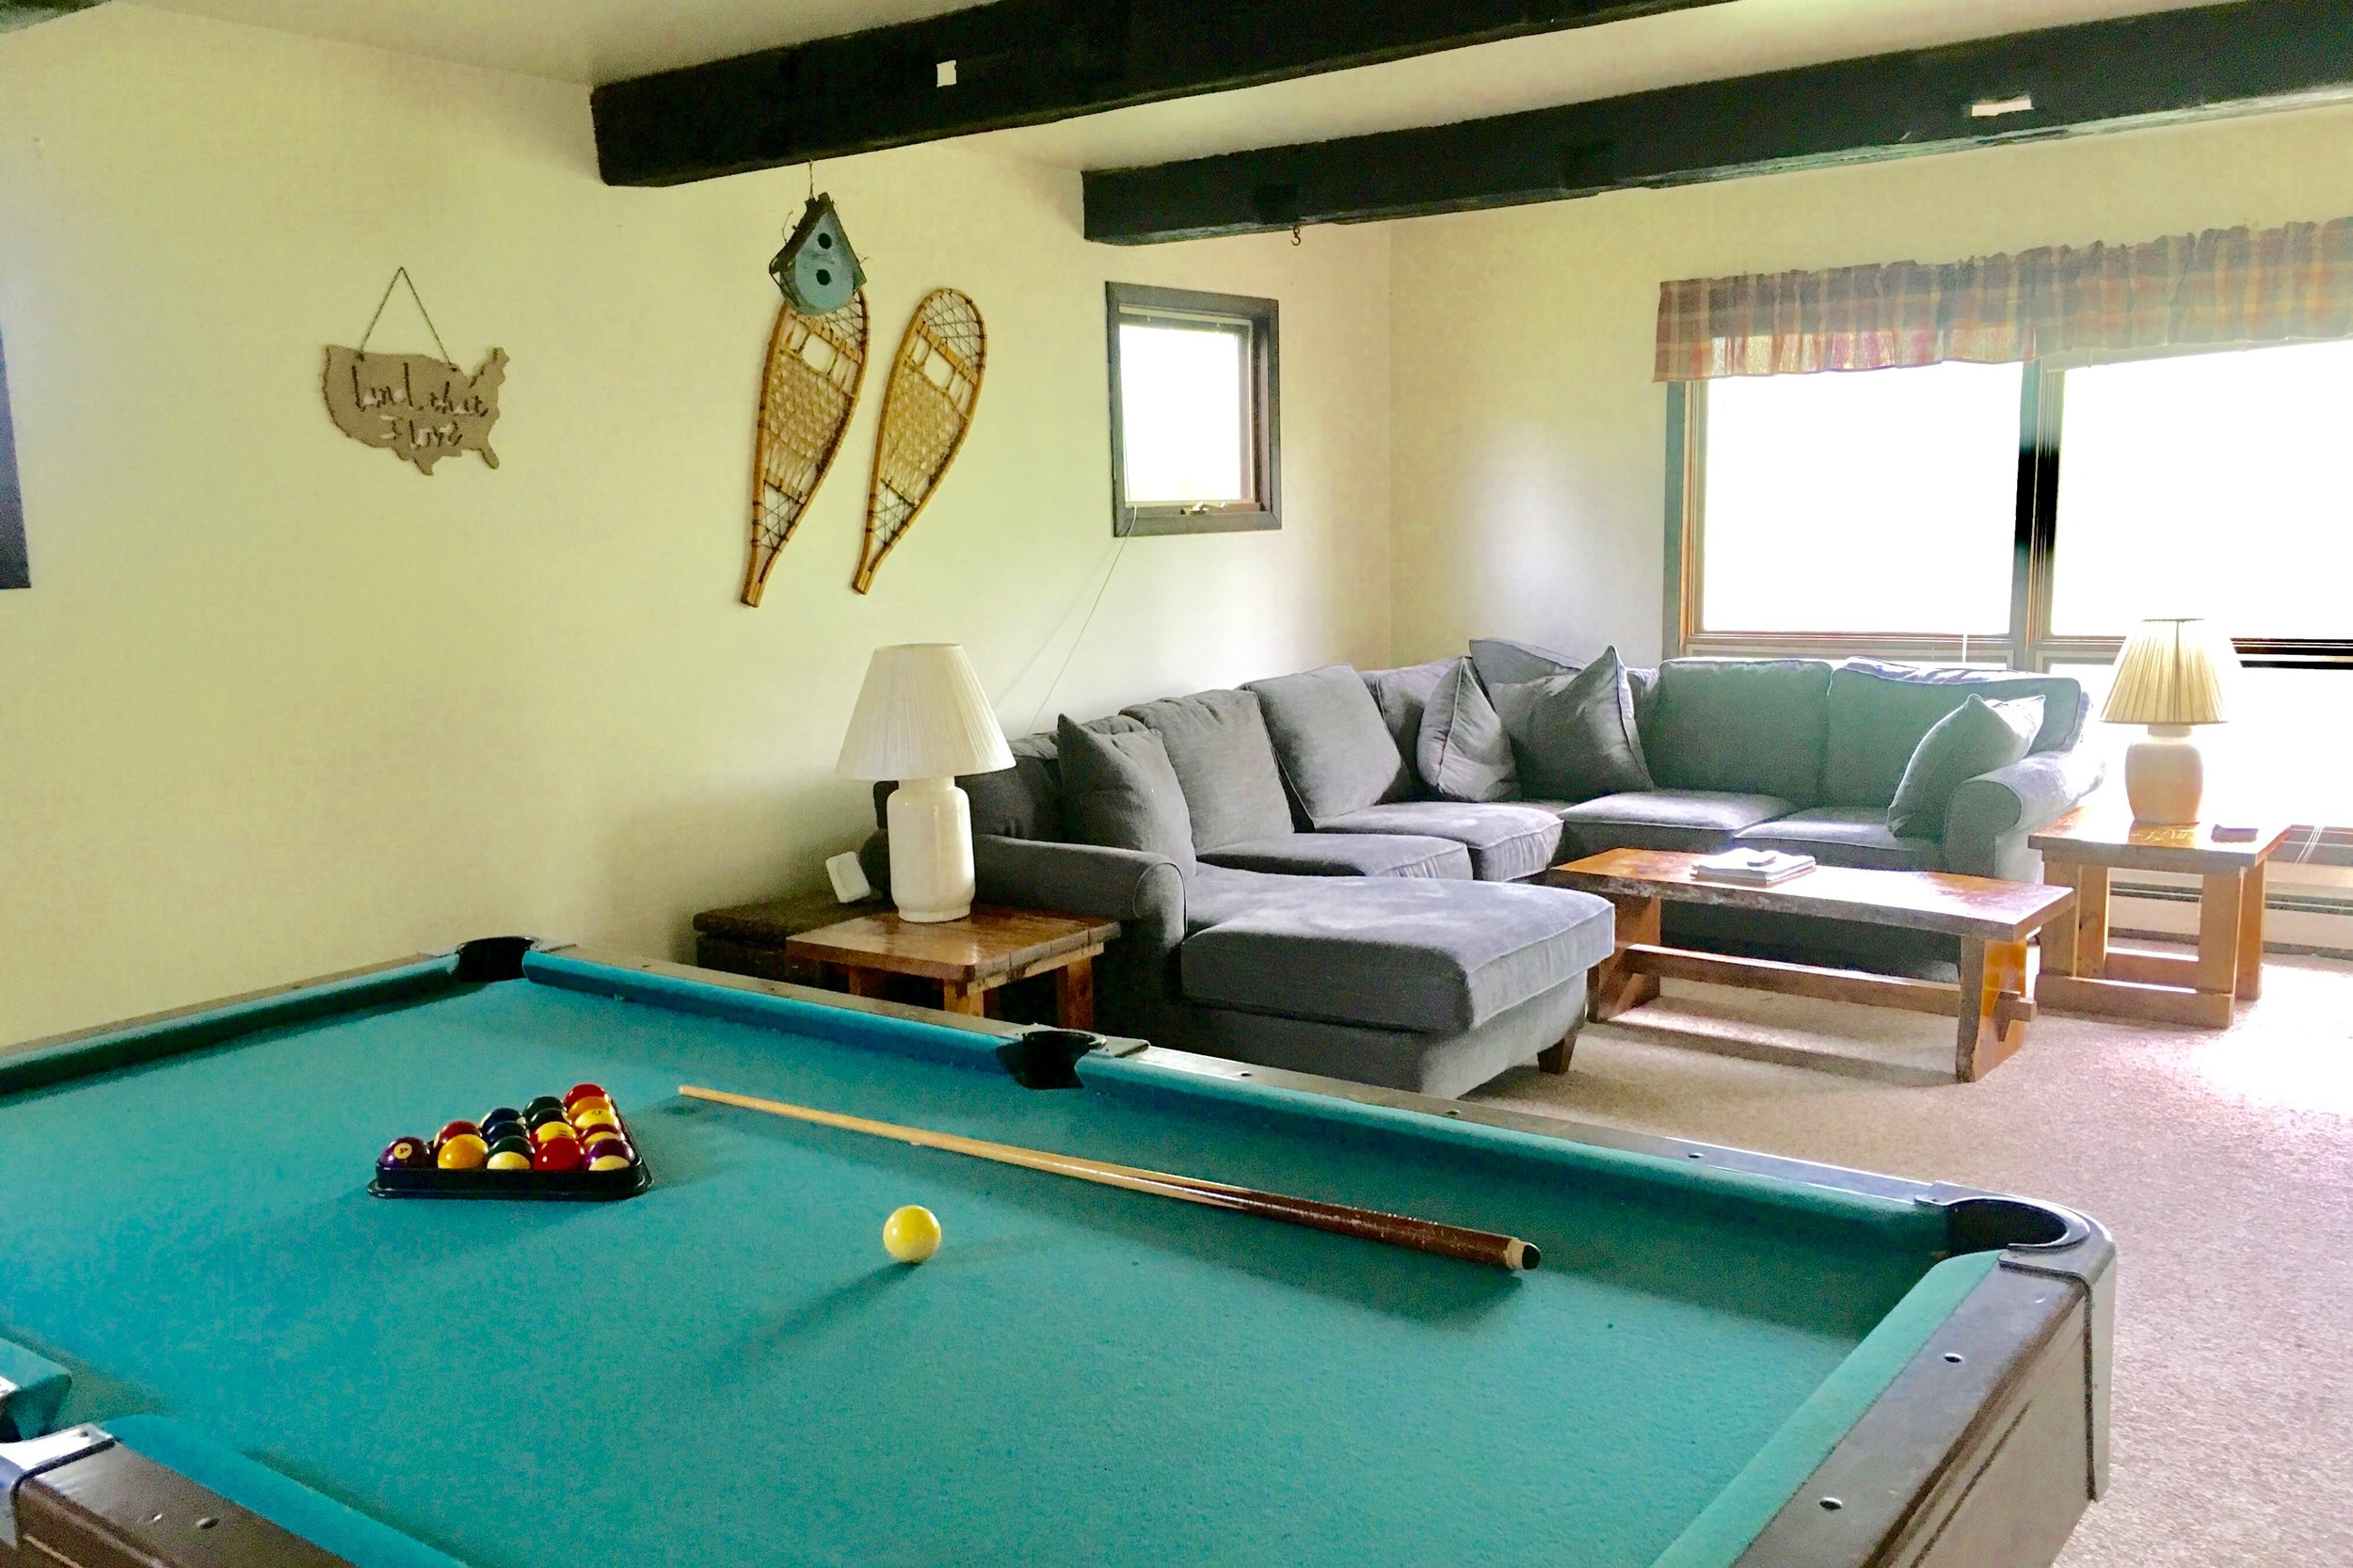 Hudson Hollow    Vacation Rental  (Pet-Friendly)  Three Bedrooms (Queen + Full + Two Twins), Shared Bath • from $149